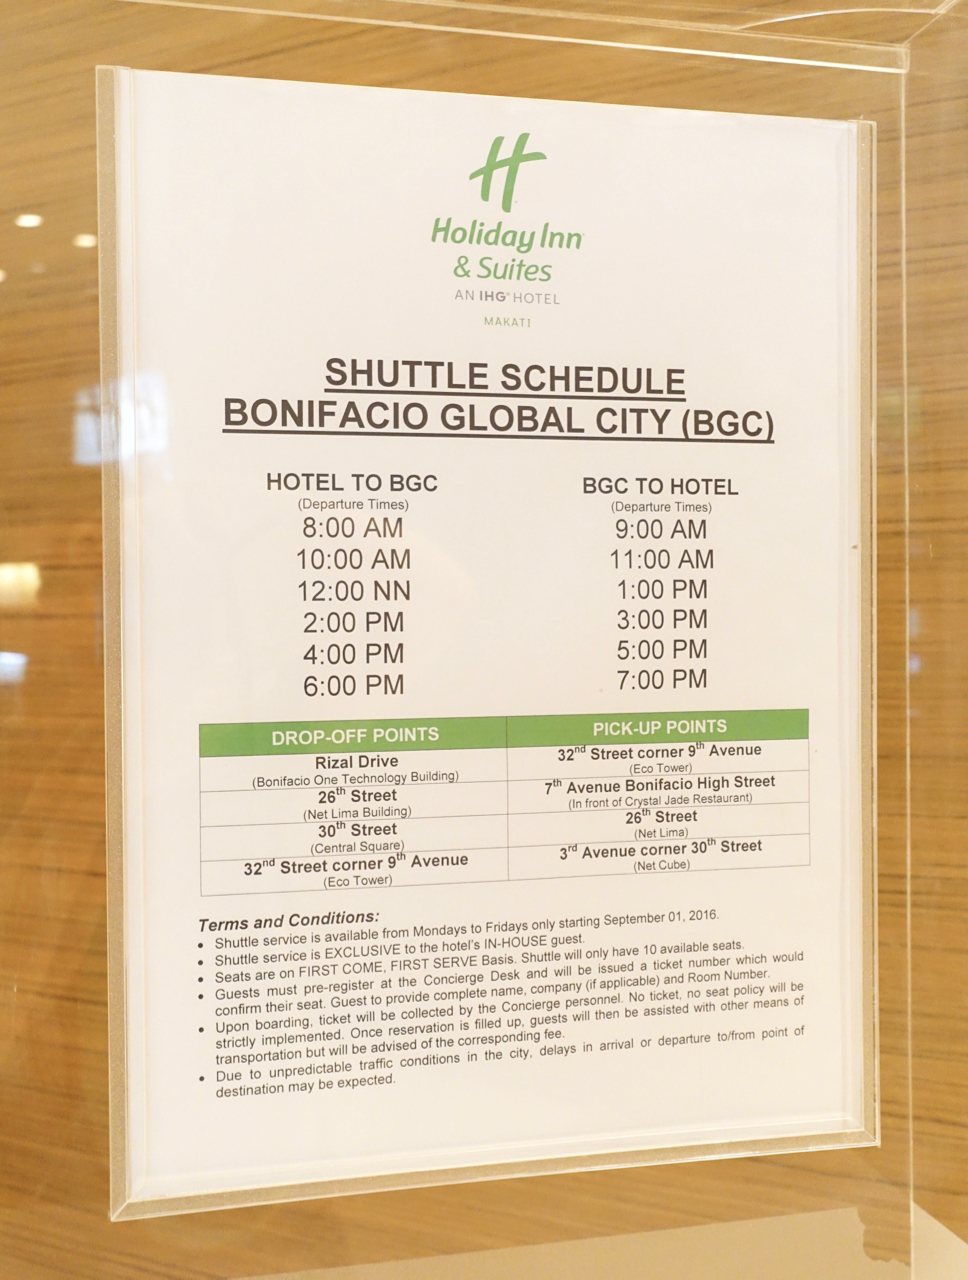 - Daily schedule between Holiday Inn & Suites Makati and BGC